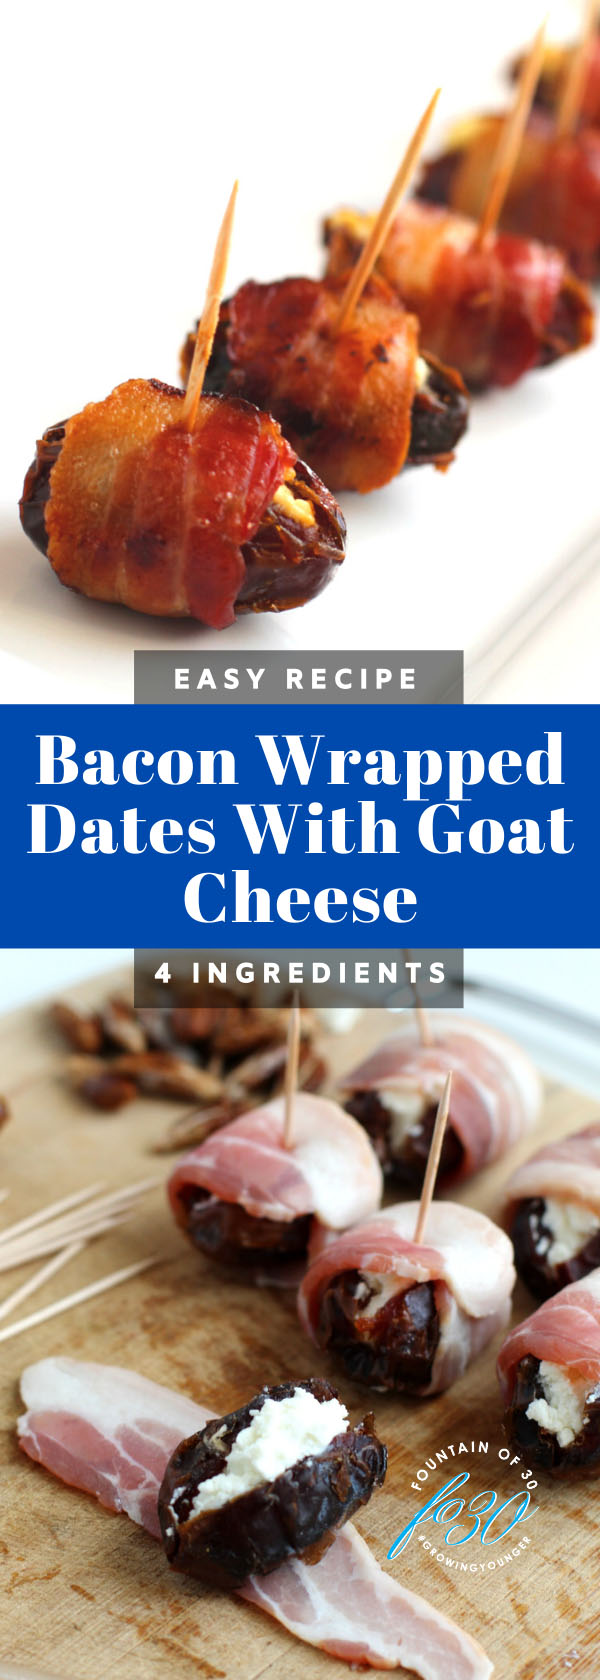 bacon wrapped dates appetizer fountainof30